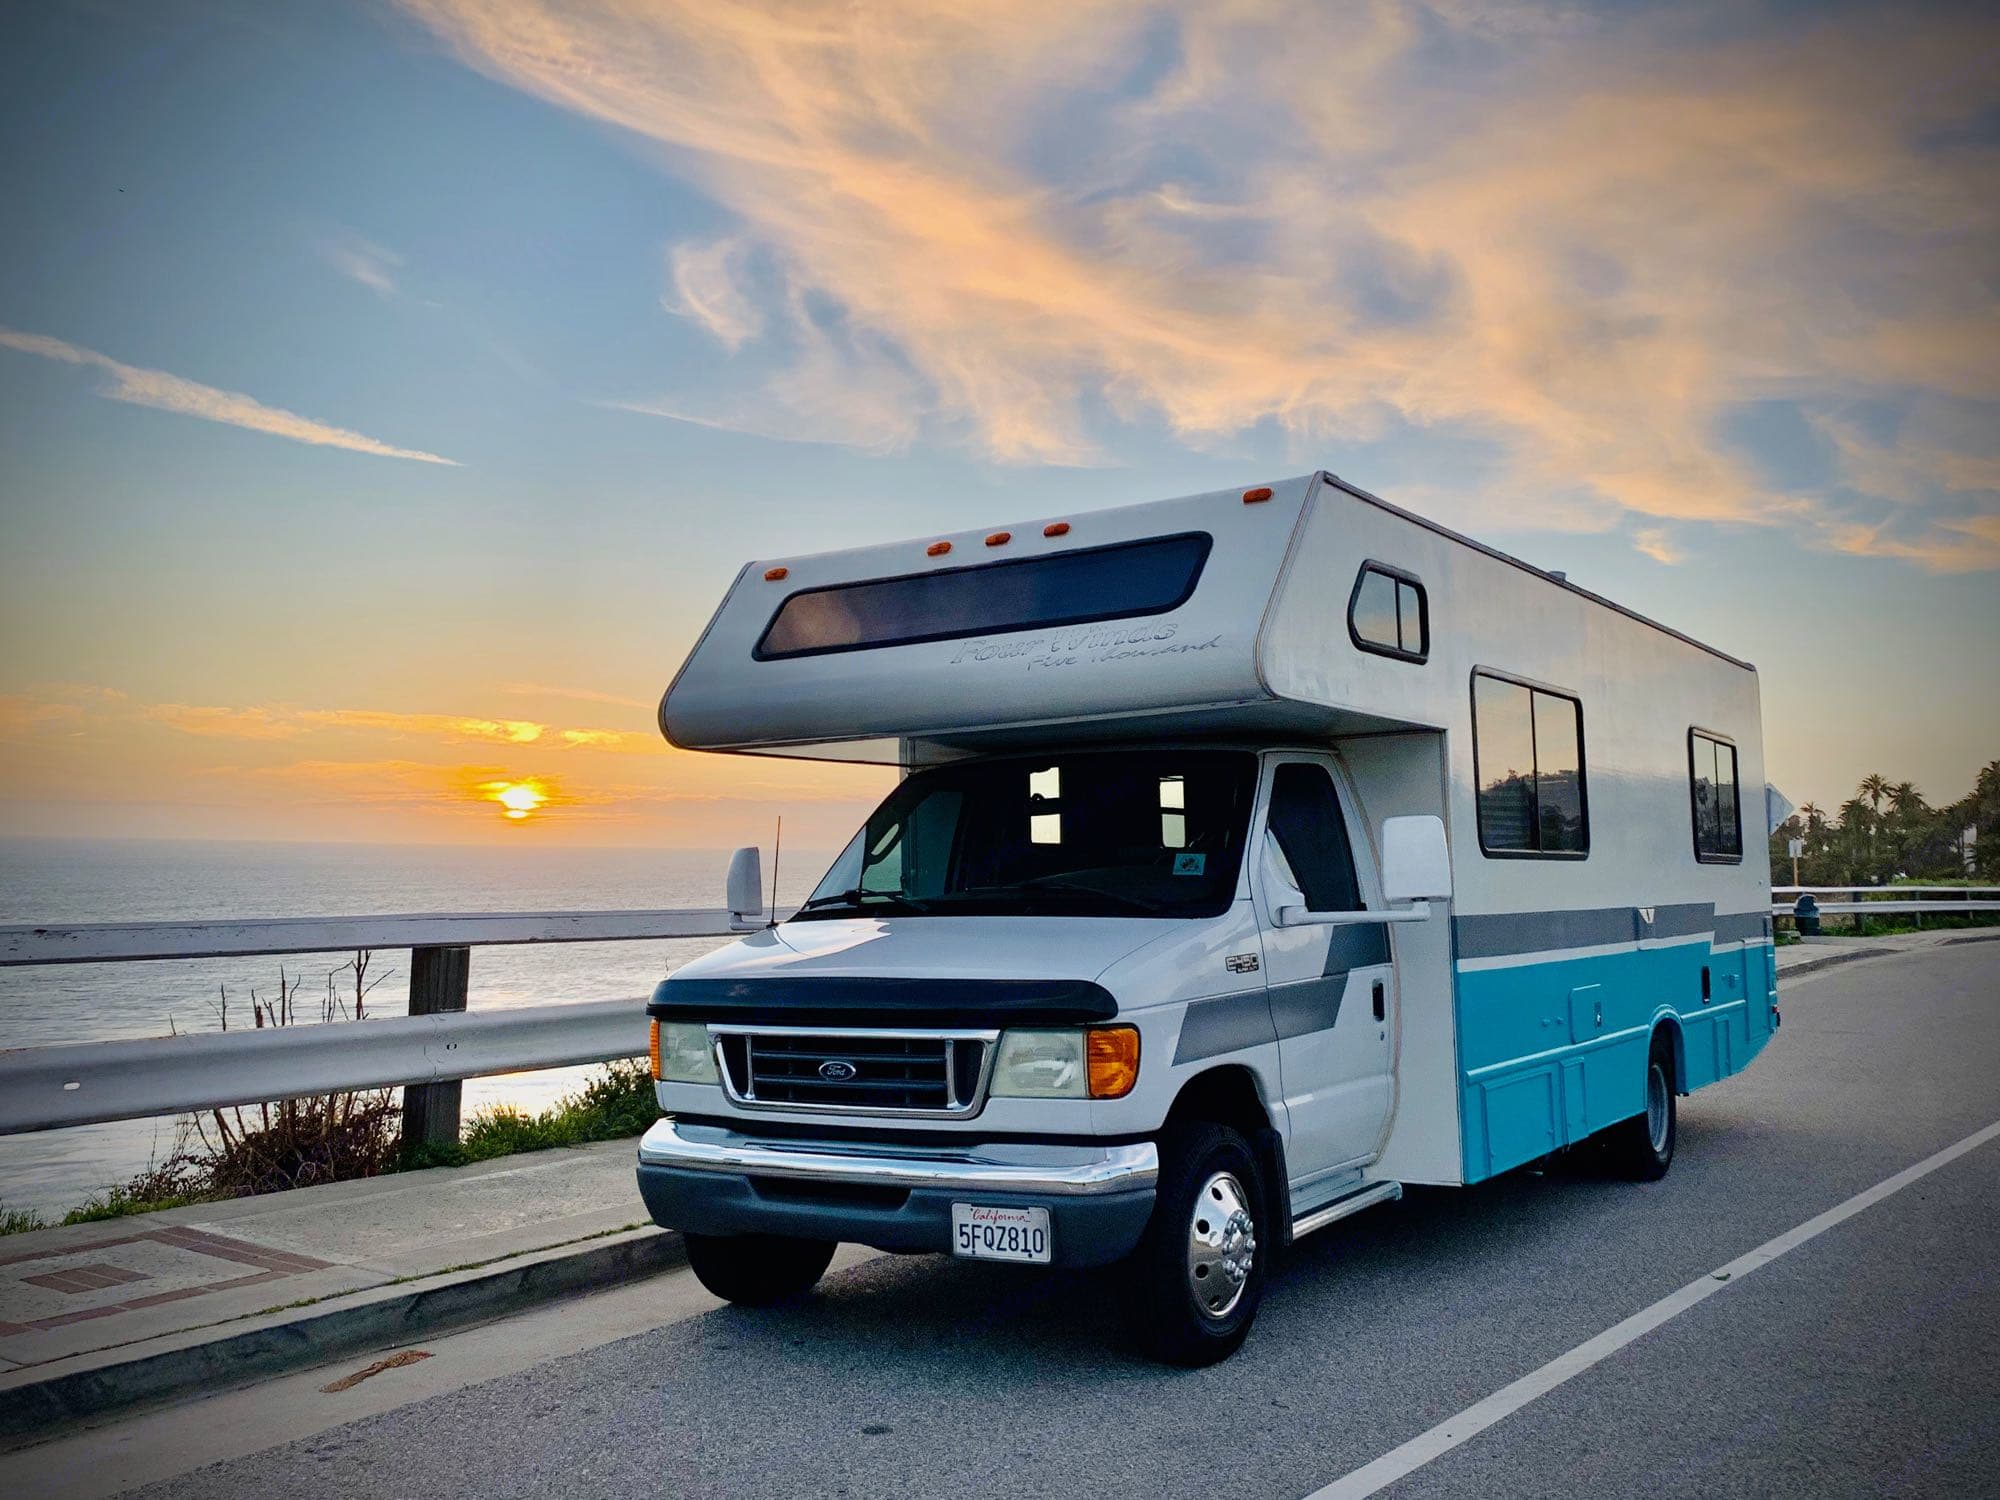 Cruise the California Coast, Mountains or Desert and turn heads with this custom C class RV. Thor Motor Coach Four Winds Five Thousand 2004